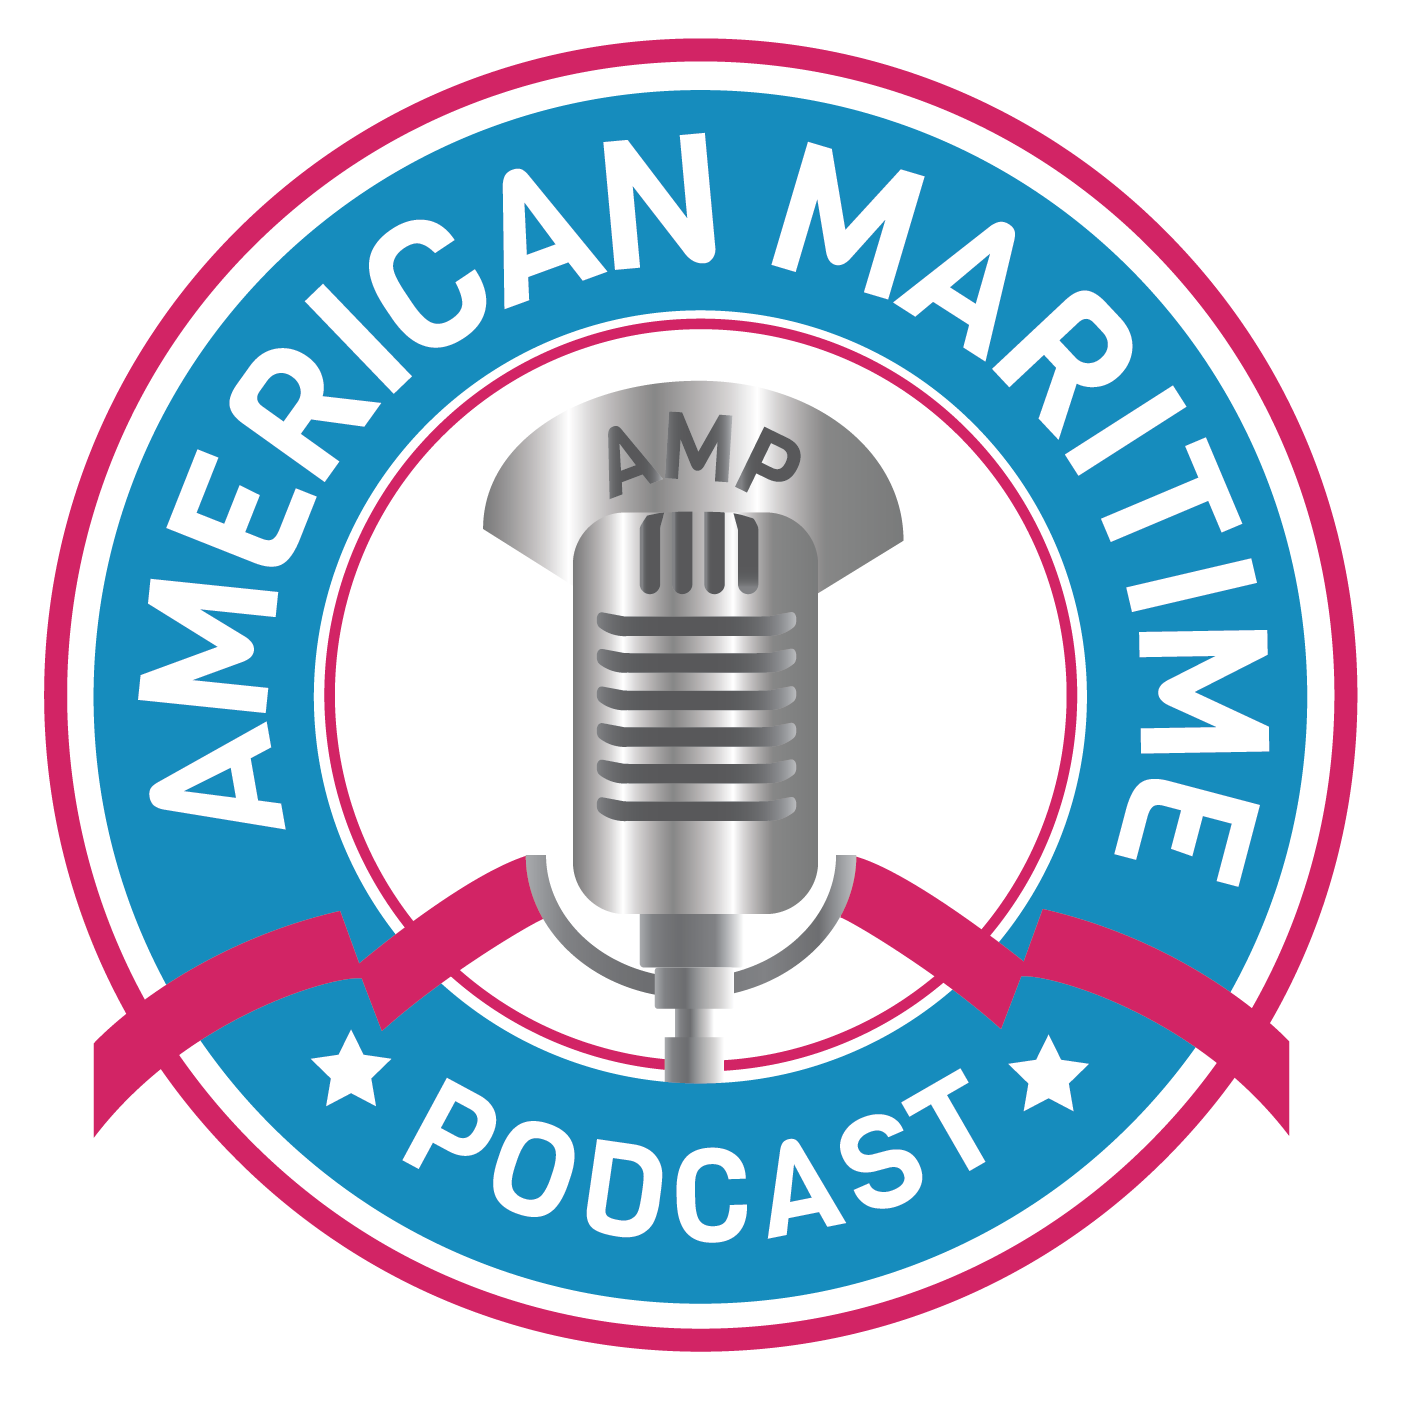 Artwork for podcast AMP: American Maritime Podcast